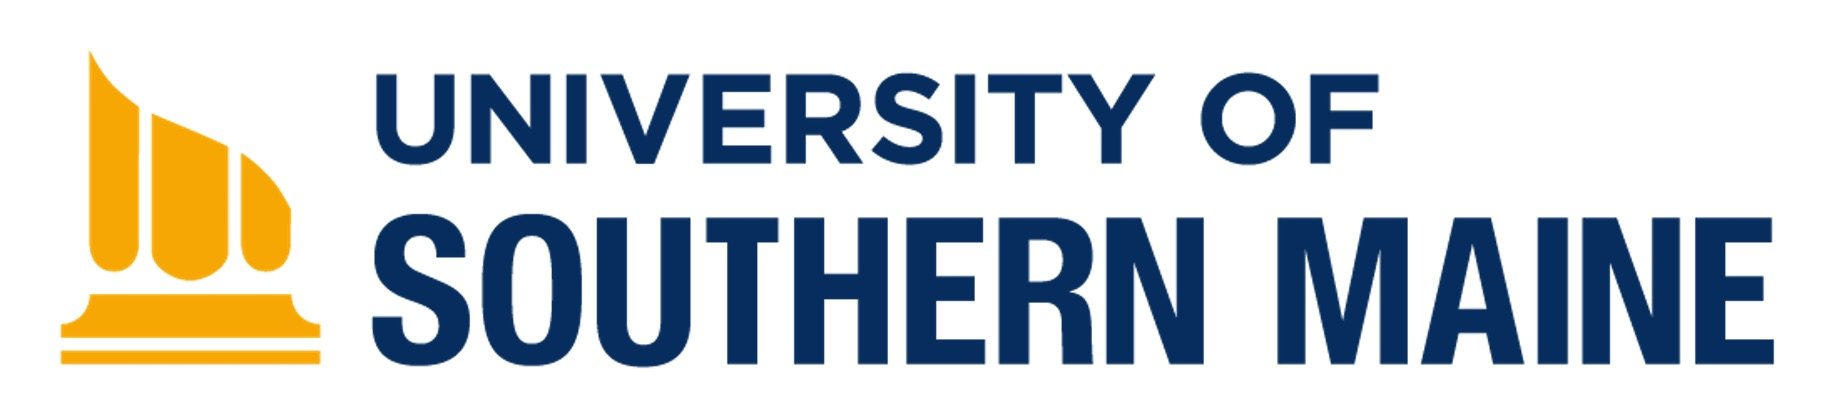 University_of_Southern_Maine_Classic_Logo.jpg